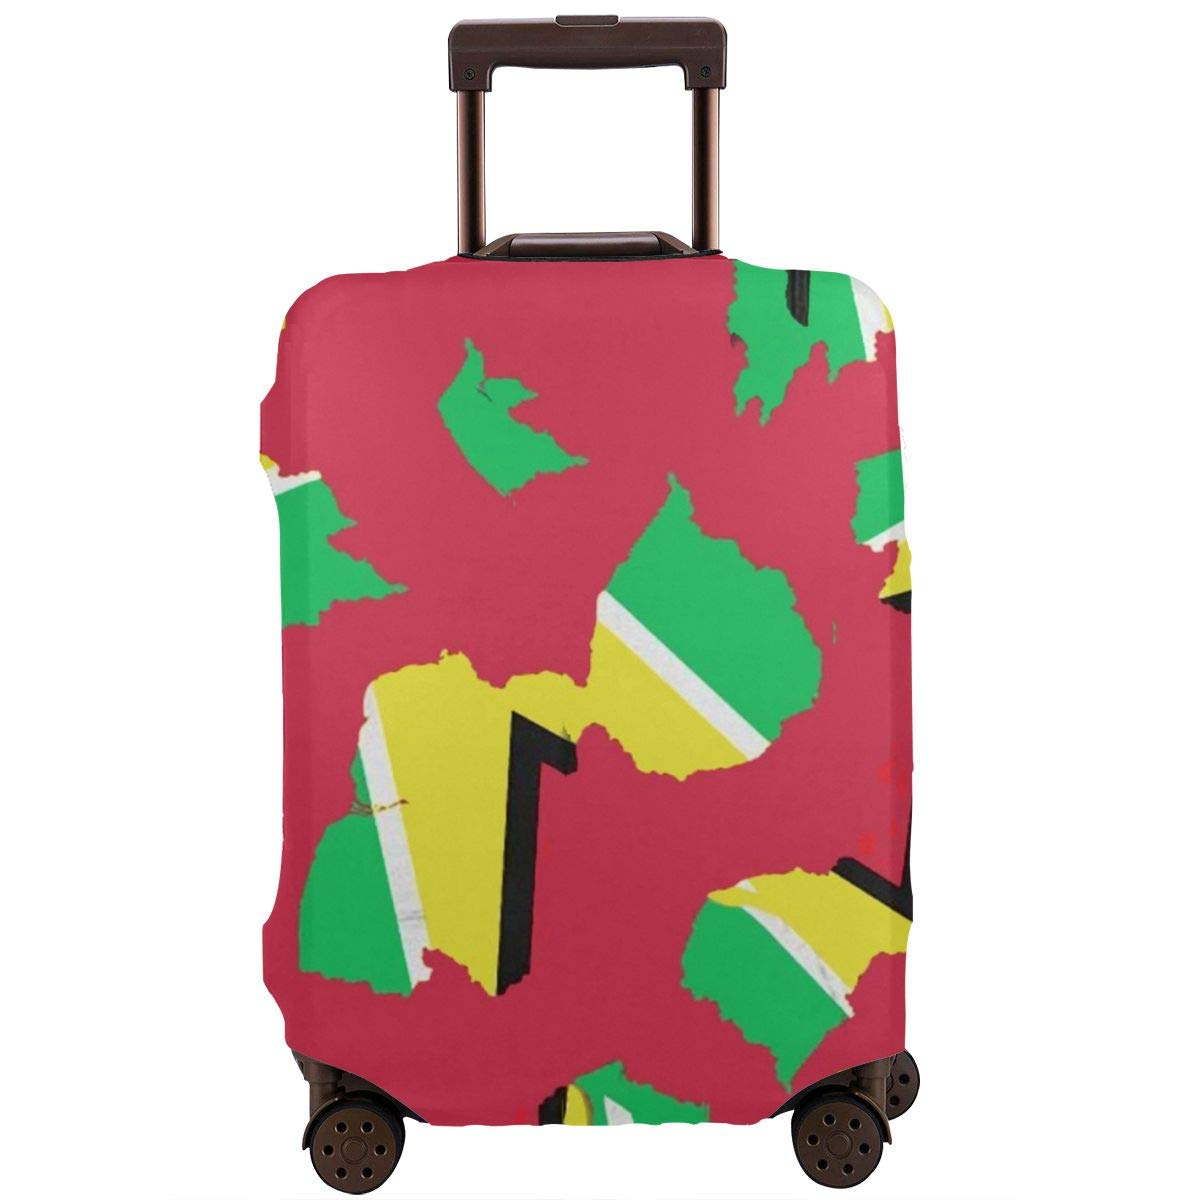 Guyana Flag Lover Luggage Cover Spandex Travel Suitcase Protector Elastic Stretchy XL Fits 29-32 inch luggage